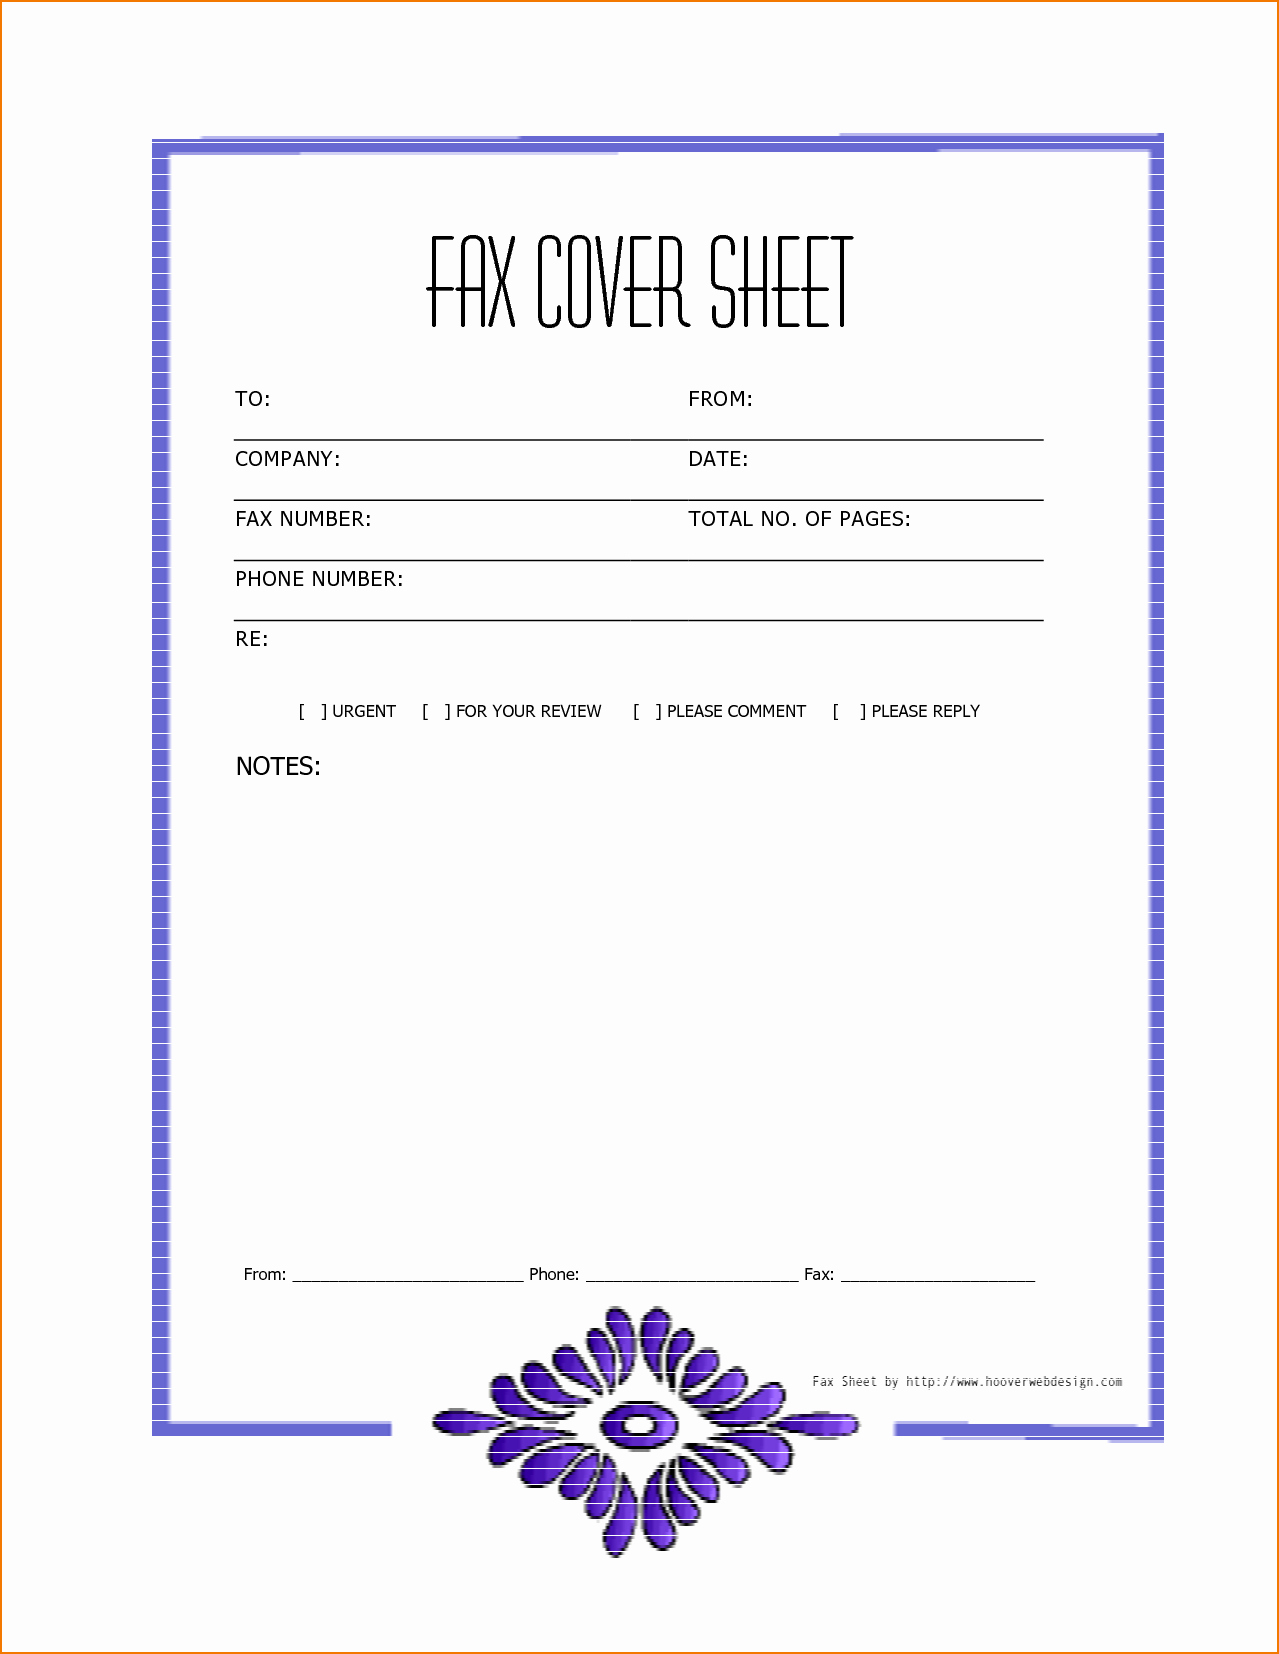 Fax Cover Sheet Printable Free Luxury 7 Free Printable Fax Cover Sheet